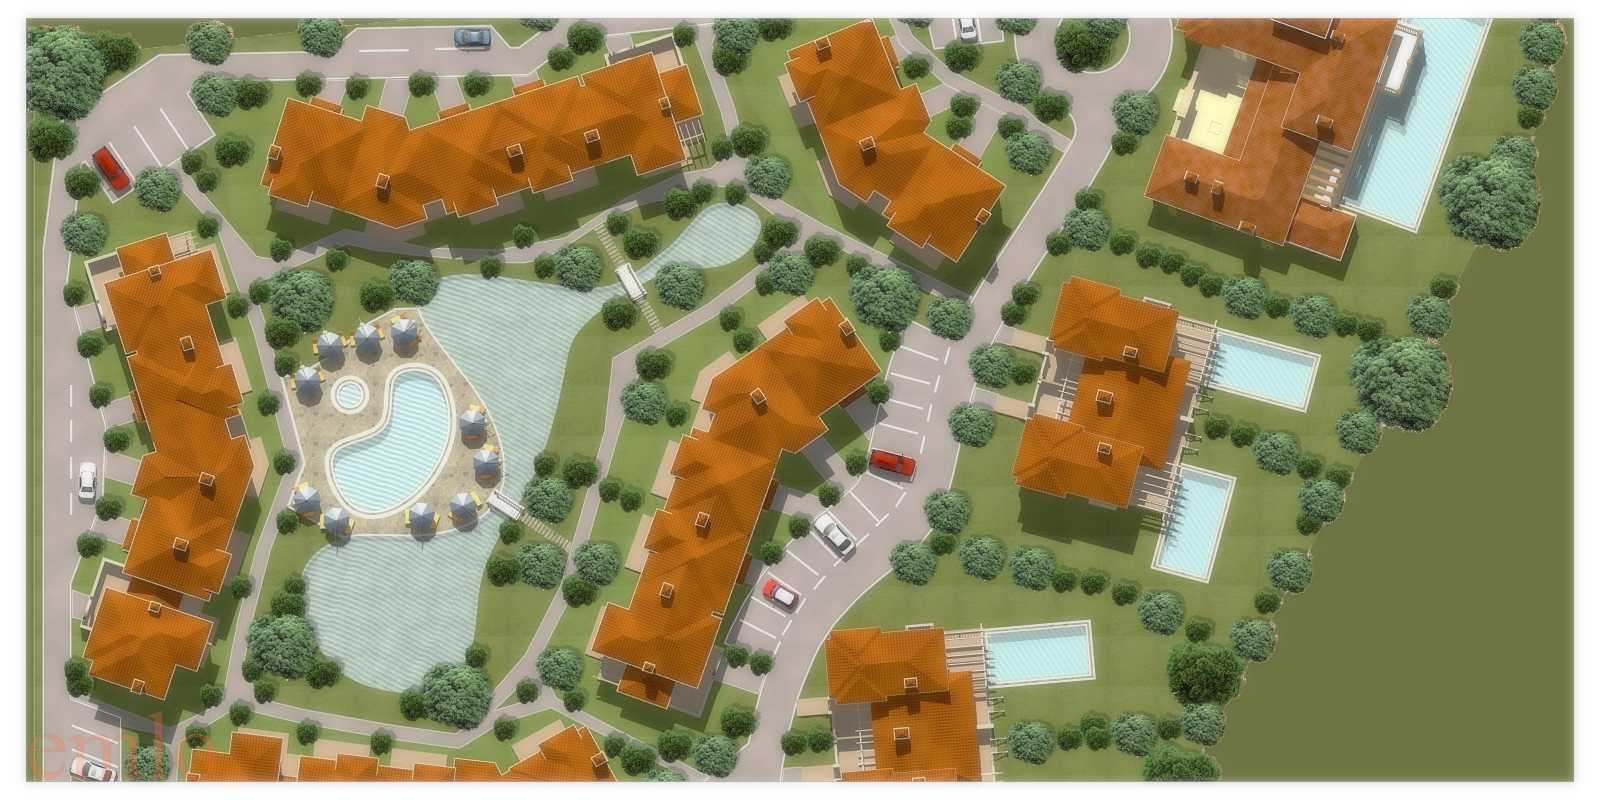 Vita Citrea - Site Plan